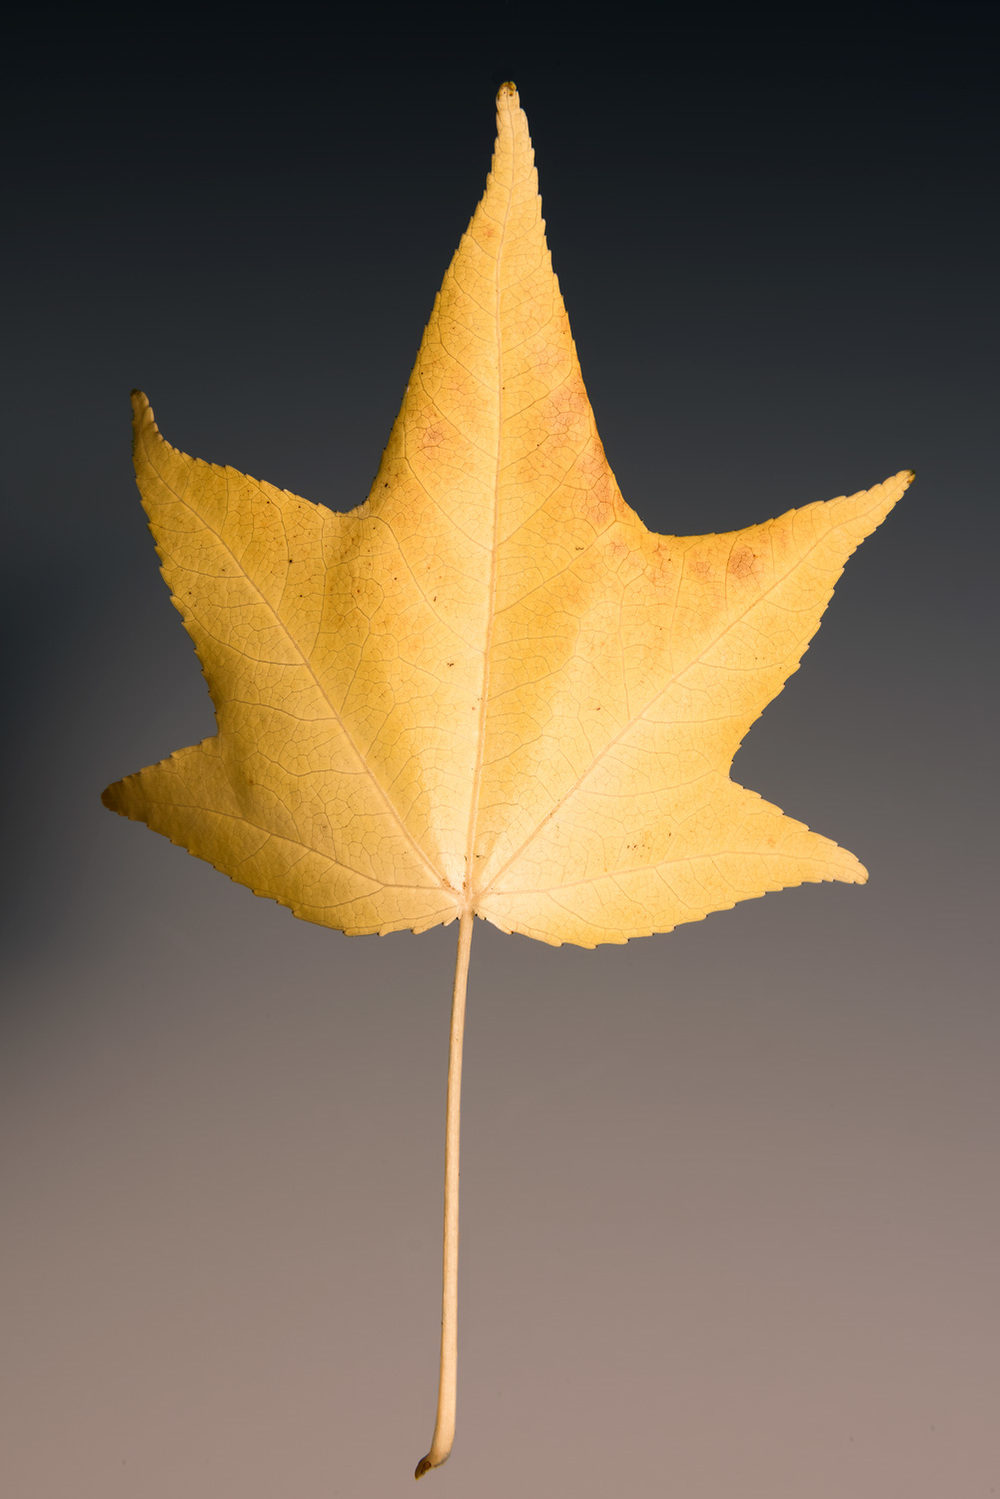 Yellow-Leaf-of-Vicksburg_DSC5853-HDR-5852-5856.jpg